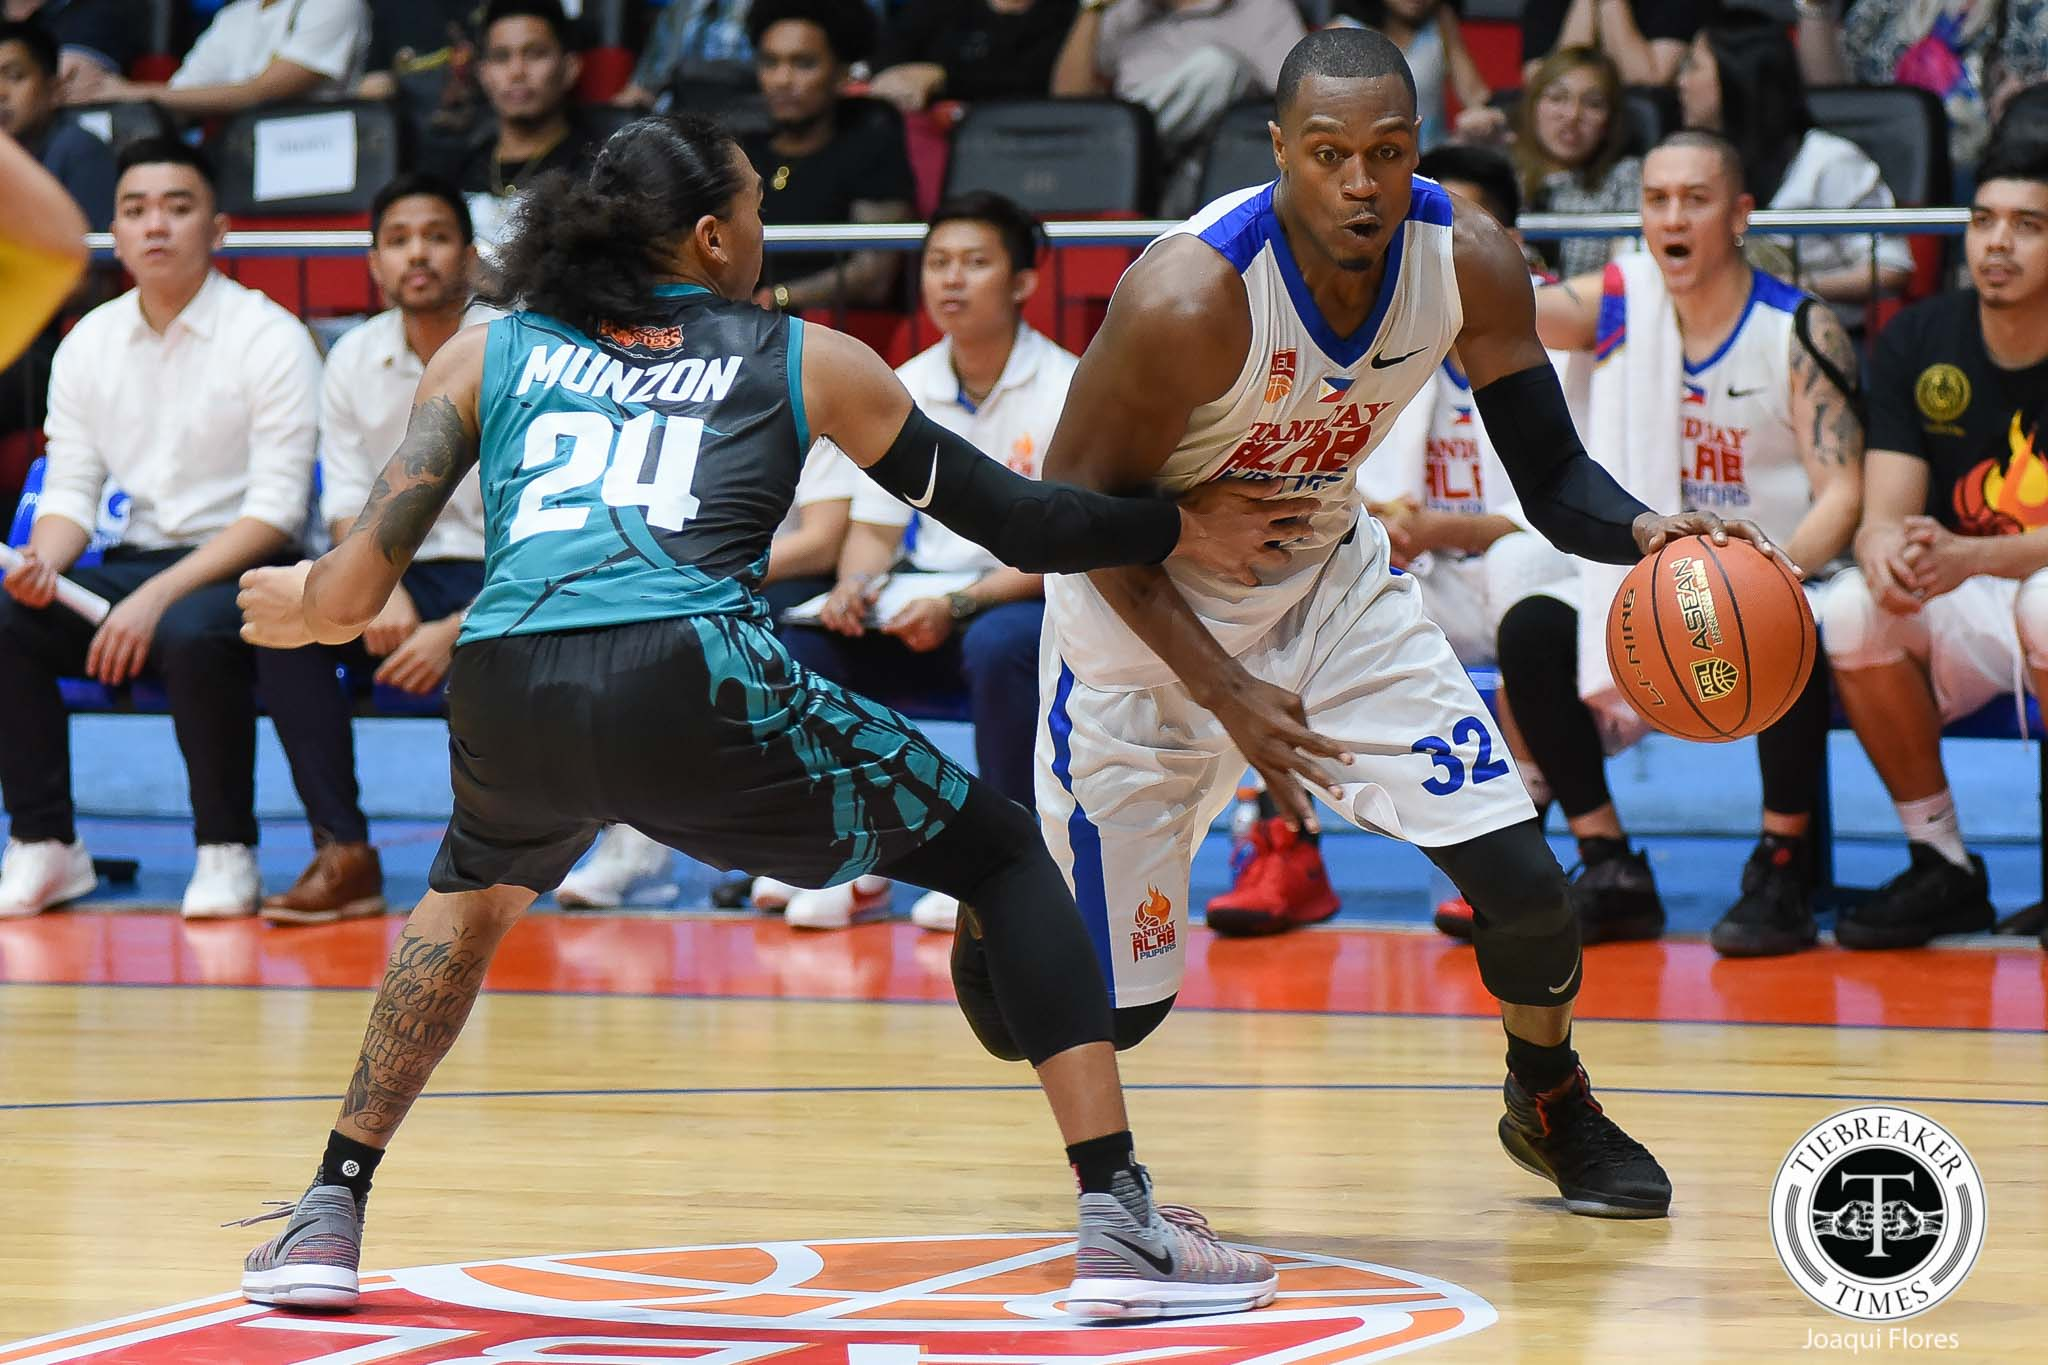 Philippine Sports News - Tiebreaker Times Jetlag and all, Justin Brownlee wakes up Alab ABL Alab Pilipinas Basketball News  Justin Brownlee Jimmy Alapag 2017-18 ABL Season